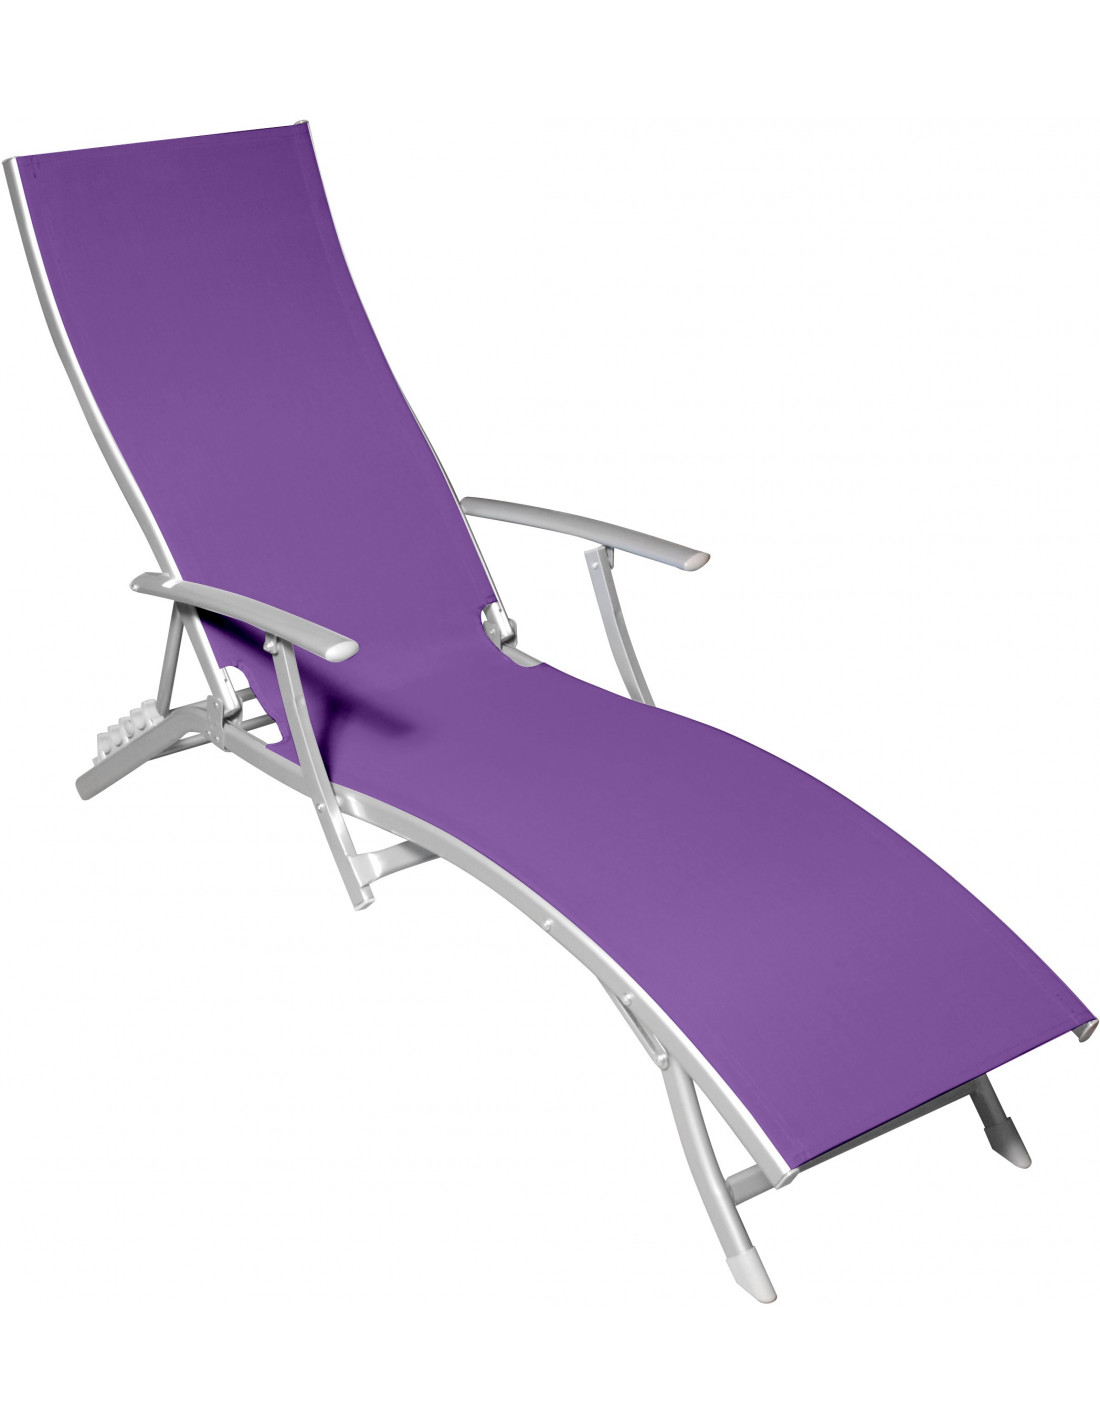 Chaise longue 5 positions mauve hyper brico for Mobilier jardin chaise longue